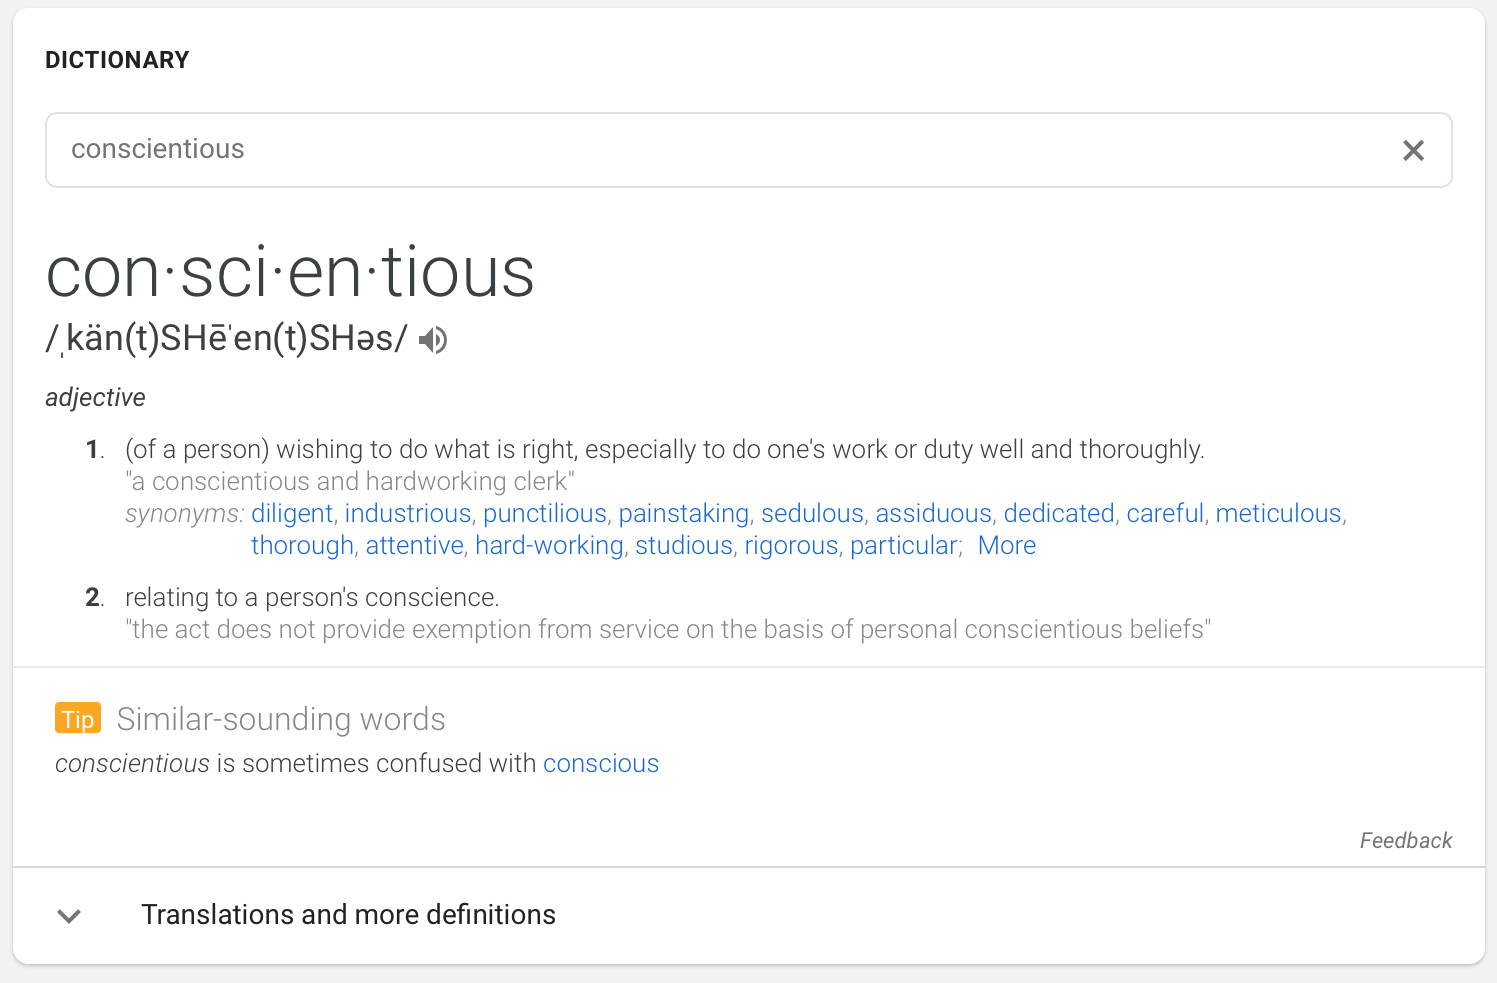 Google Adds 'Similar Sounding Words' to Dictionary Search Cards